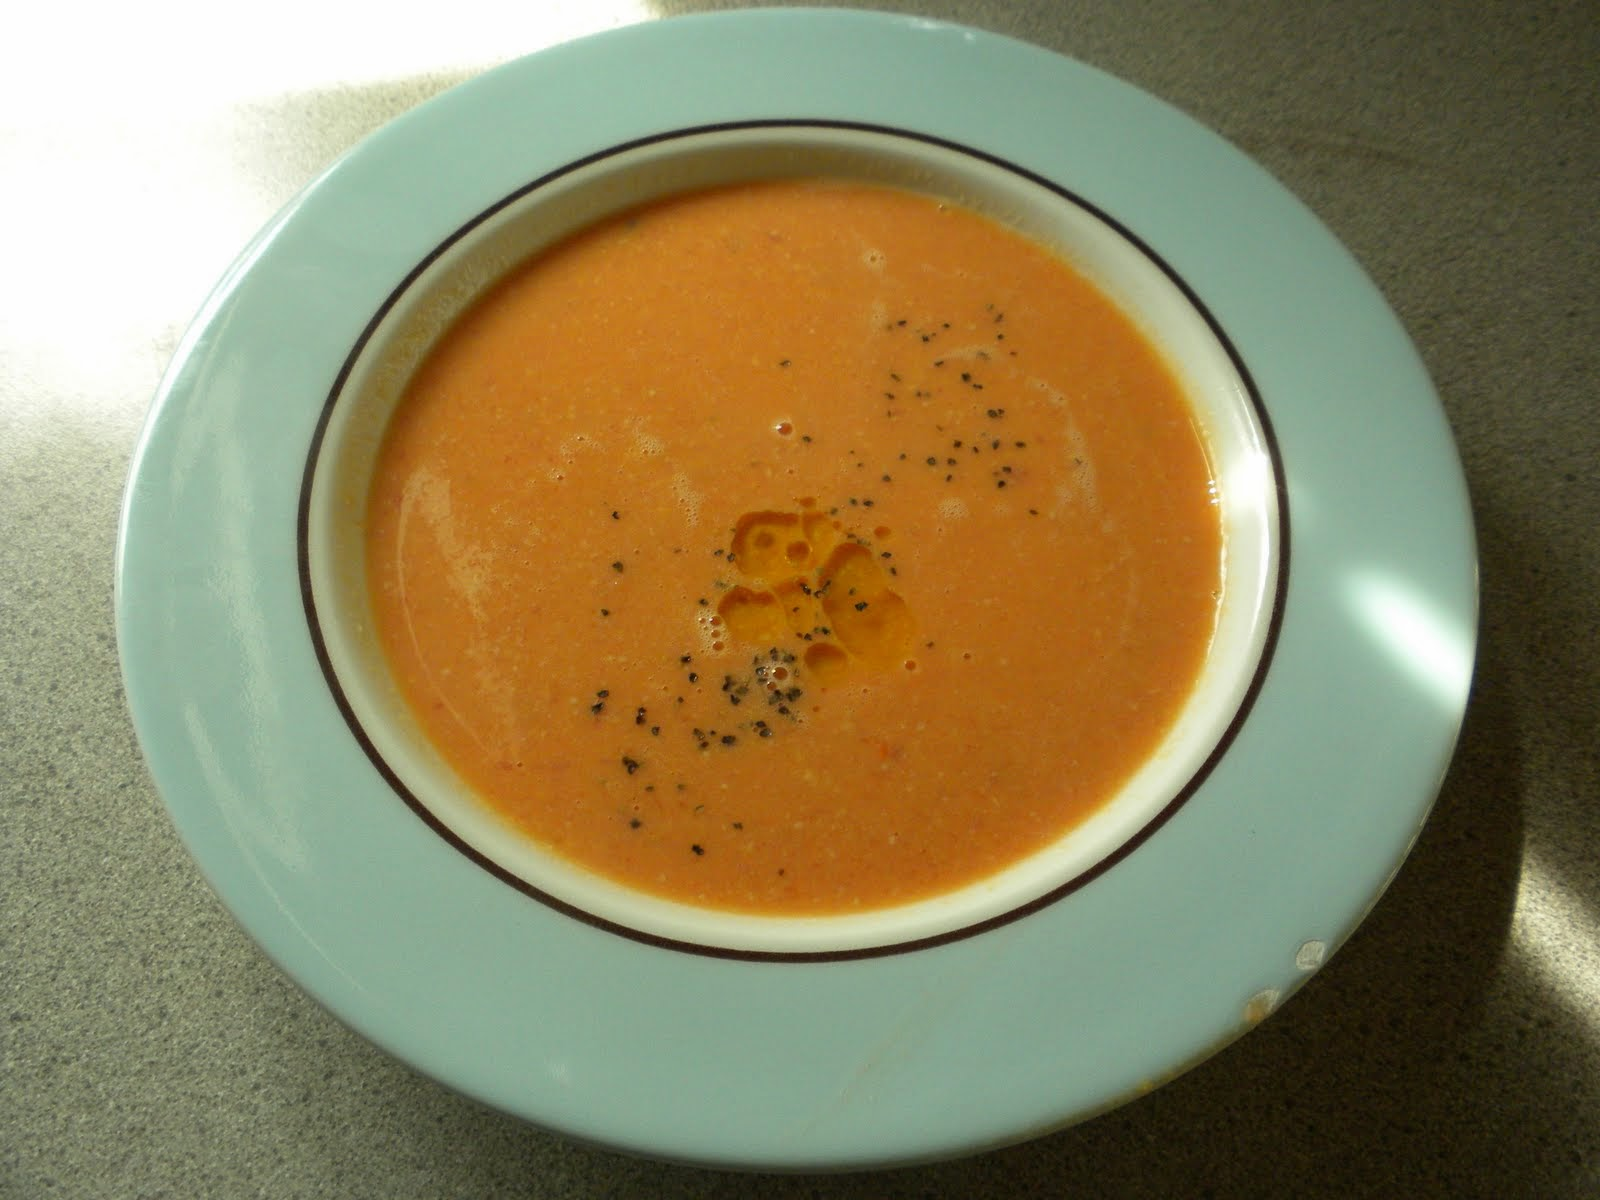 One Couple's Kitchen: A Modified Cote d'Azur Cure-All Soup